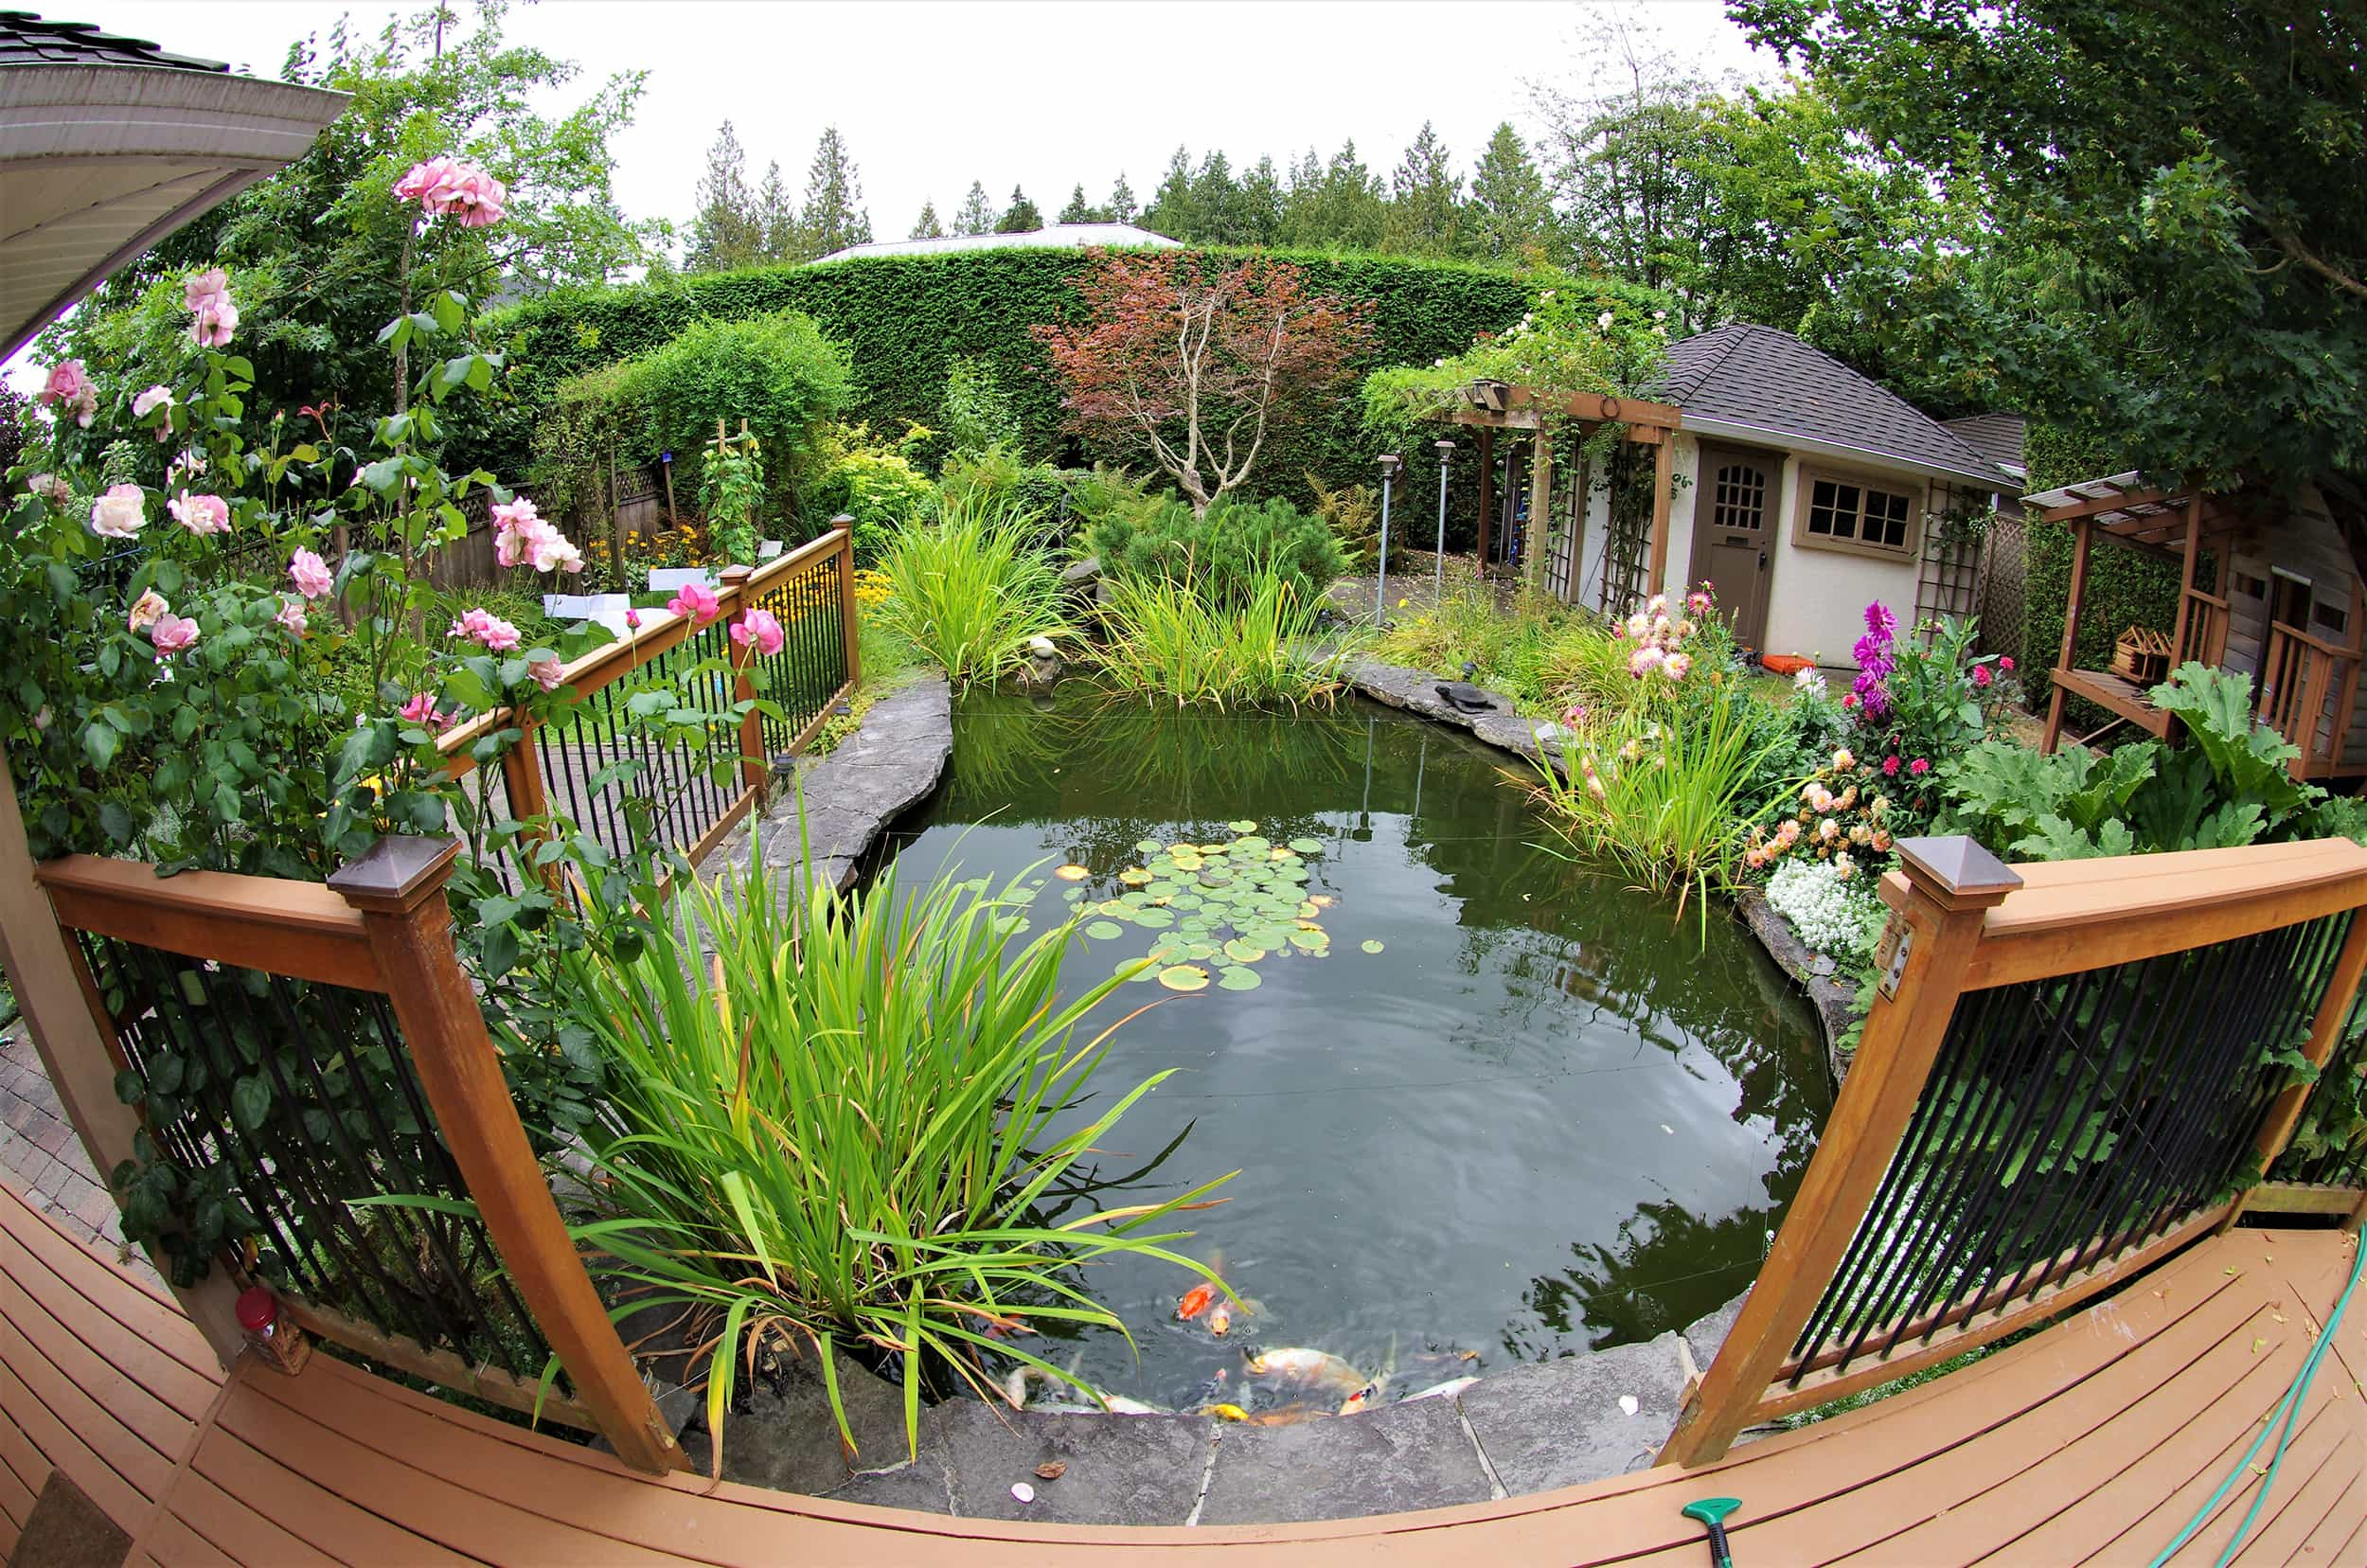 Backyard Koi Pond with plants S - Formal Ponds and Pools